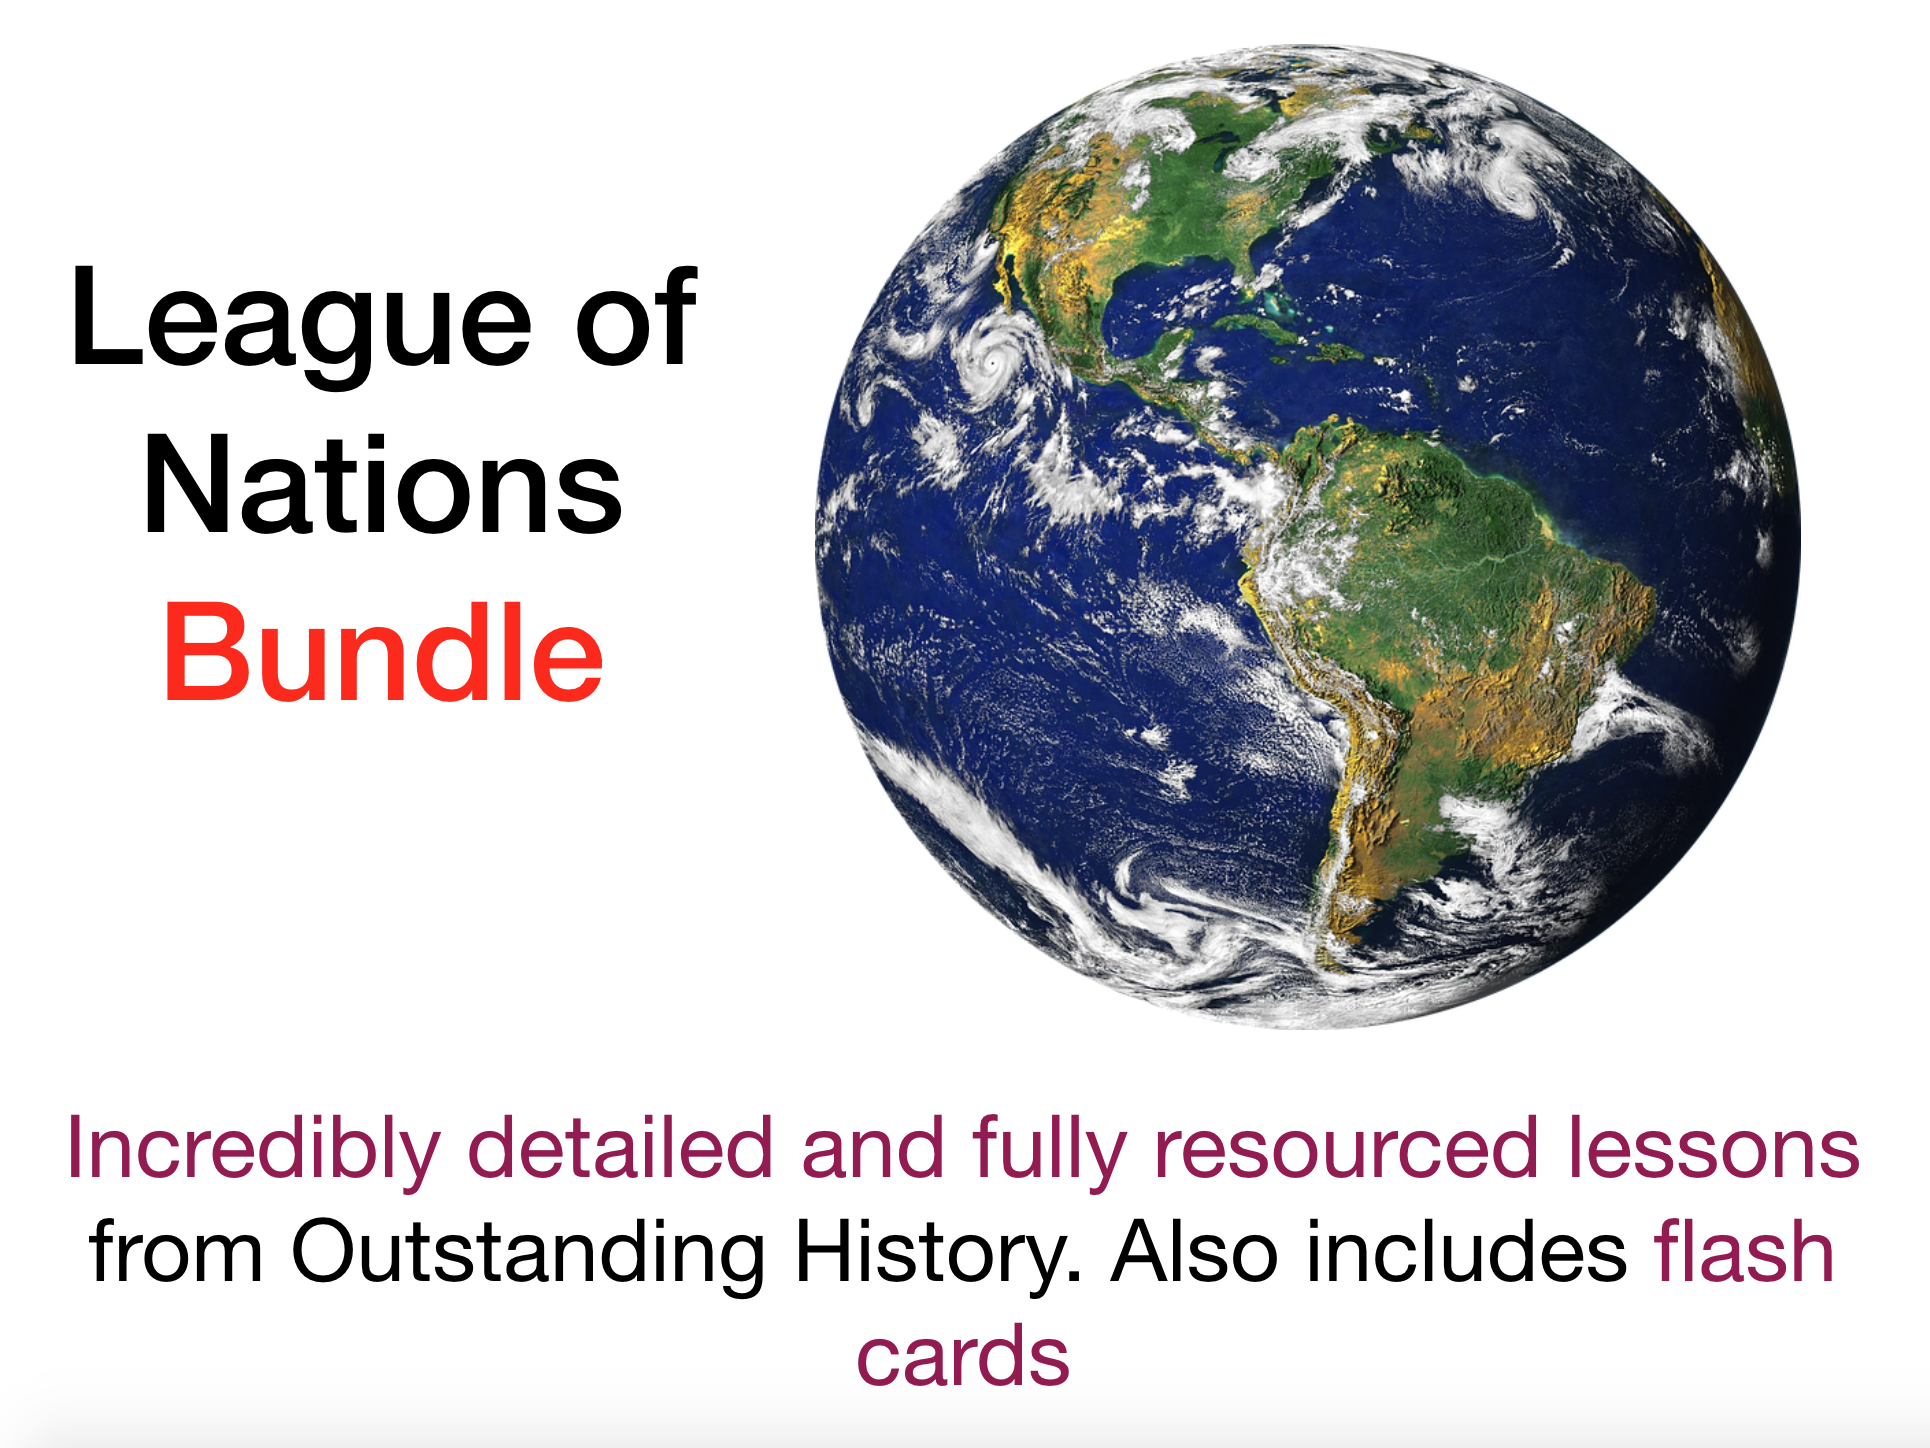 League of Nations Bundle - Outstanding Fully Resourced Lessons